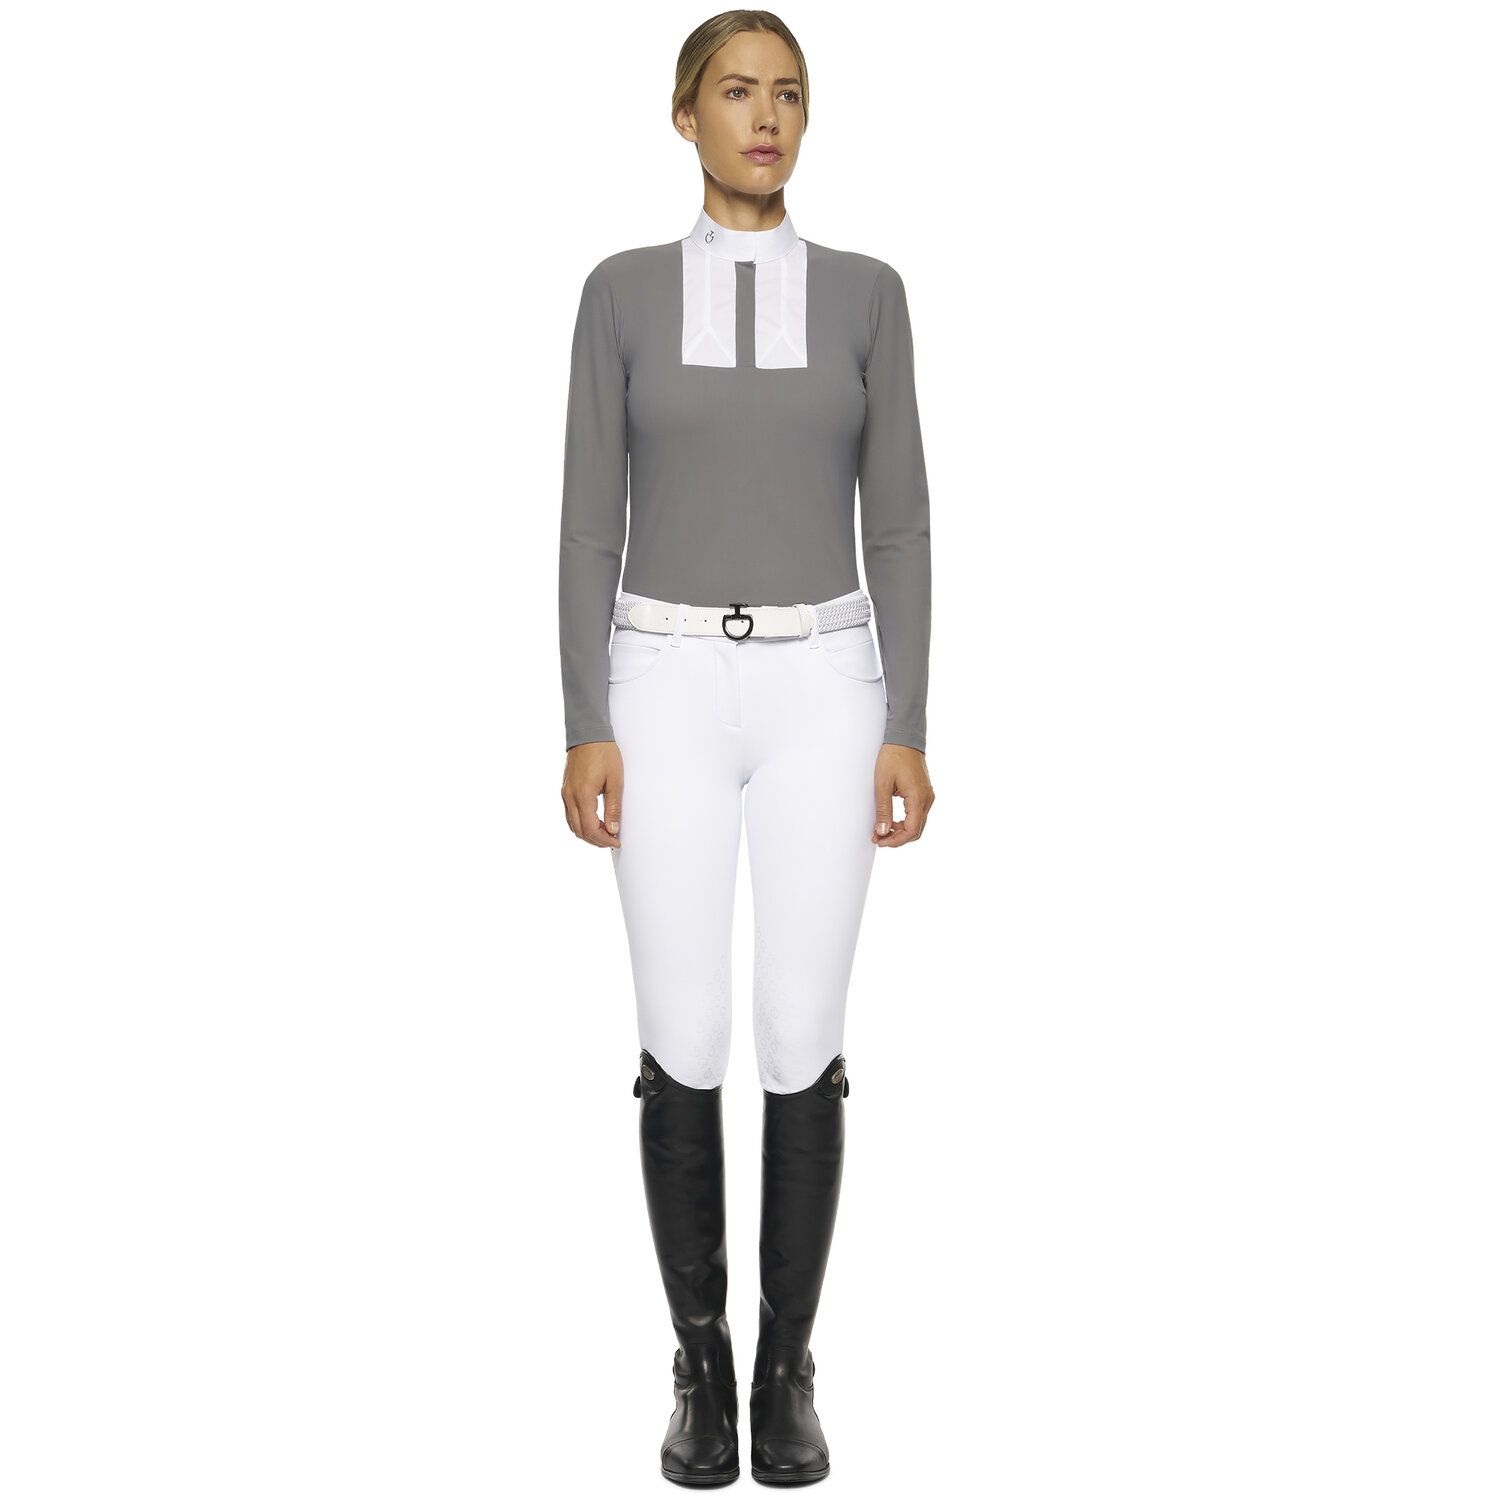 Women's long-sleeved polo with bib